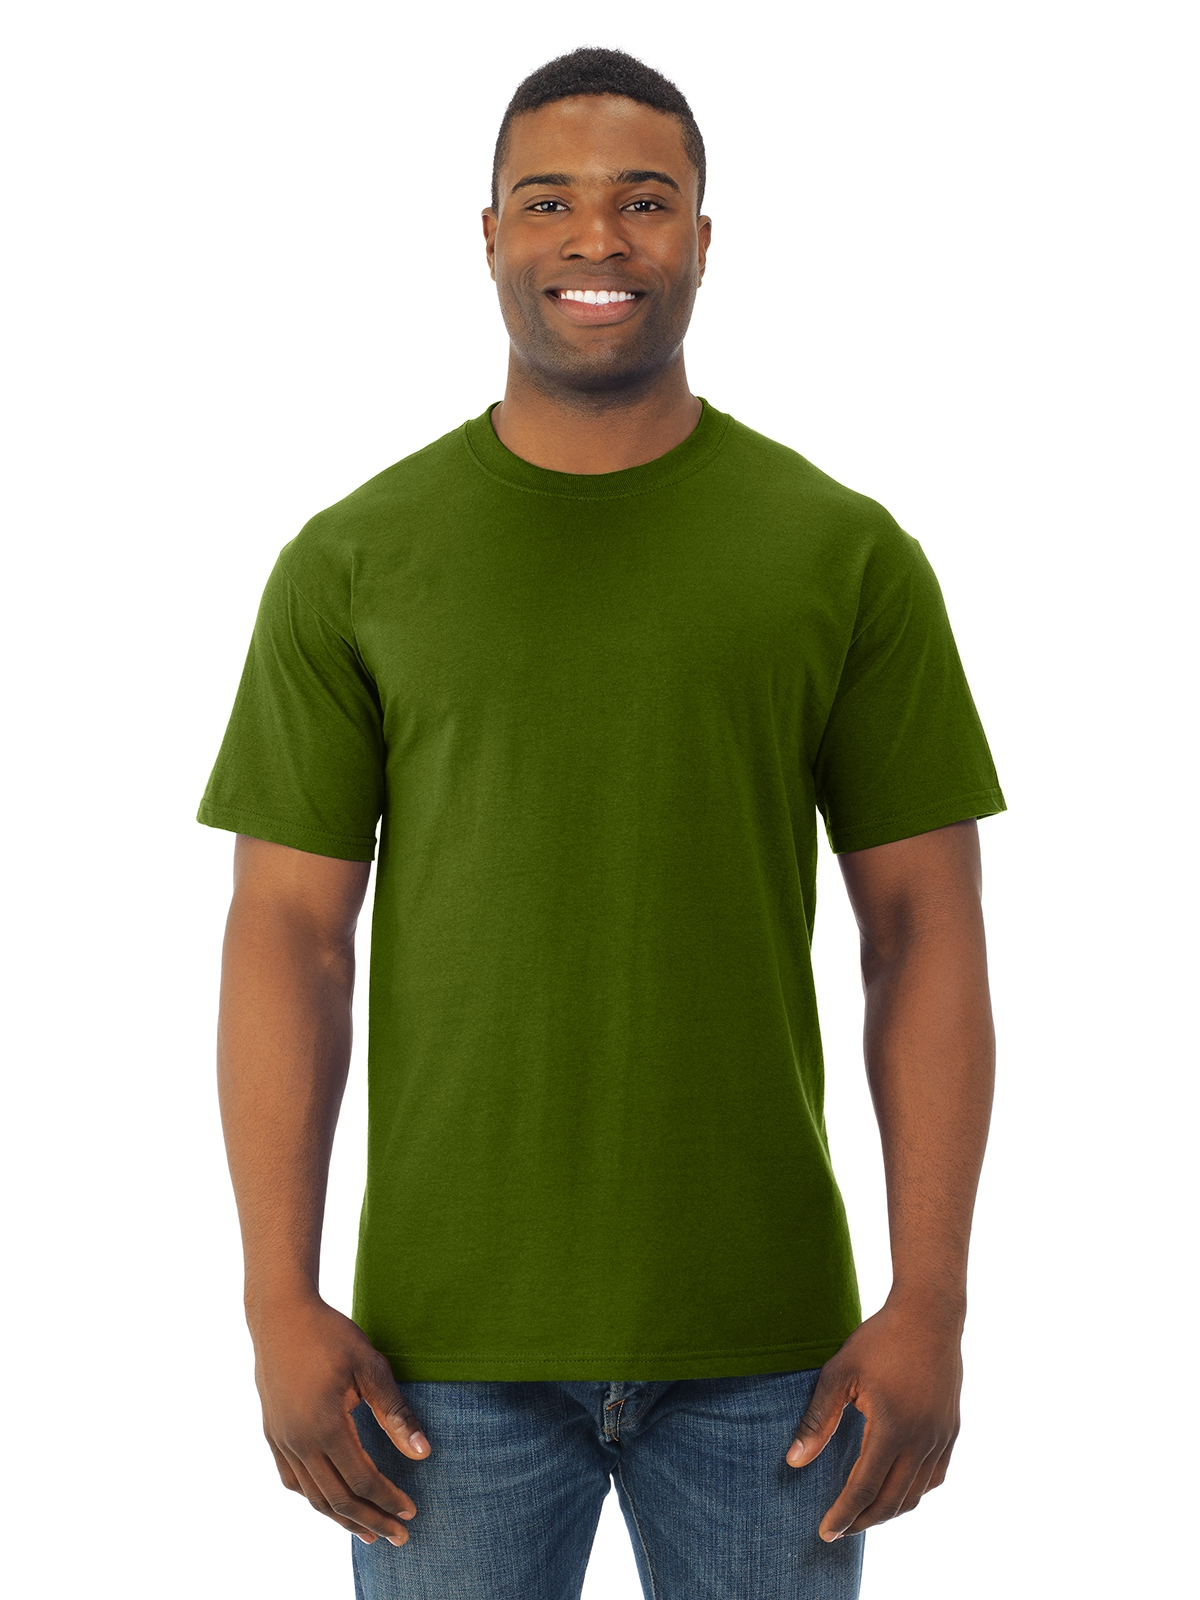 Fruit of the Loom 3930R HD Cotton™ T-Shirt